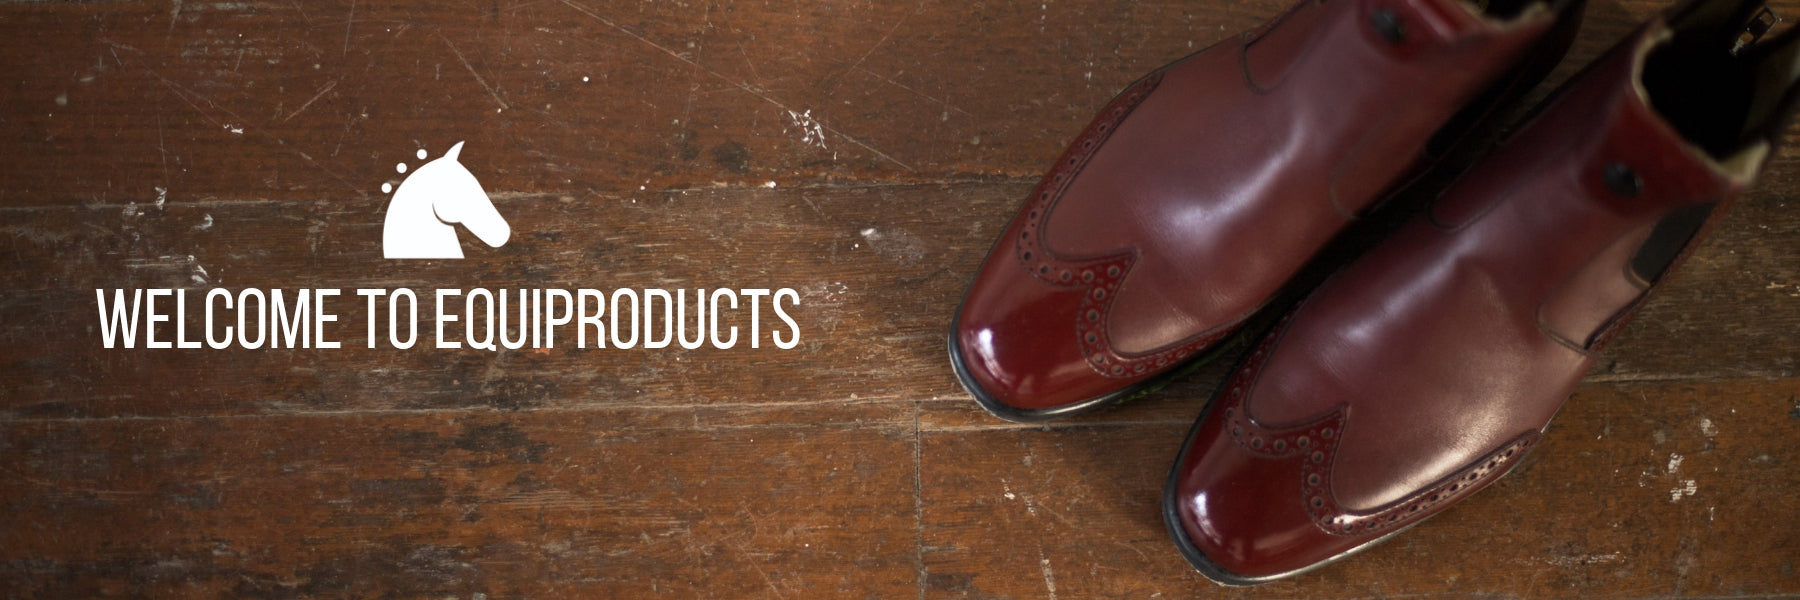 Equi-Products — Equi Products